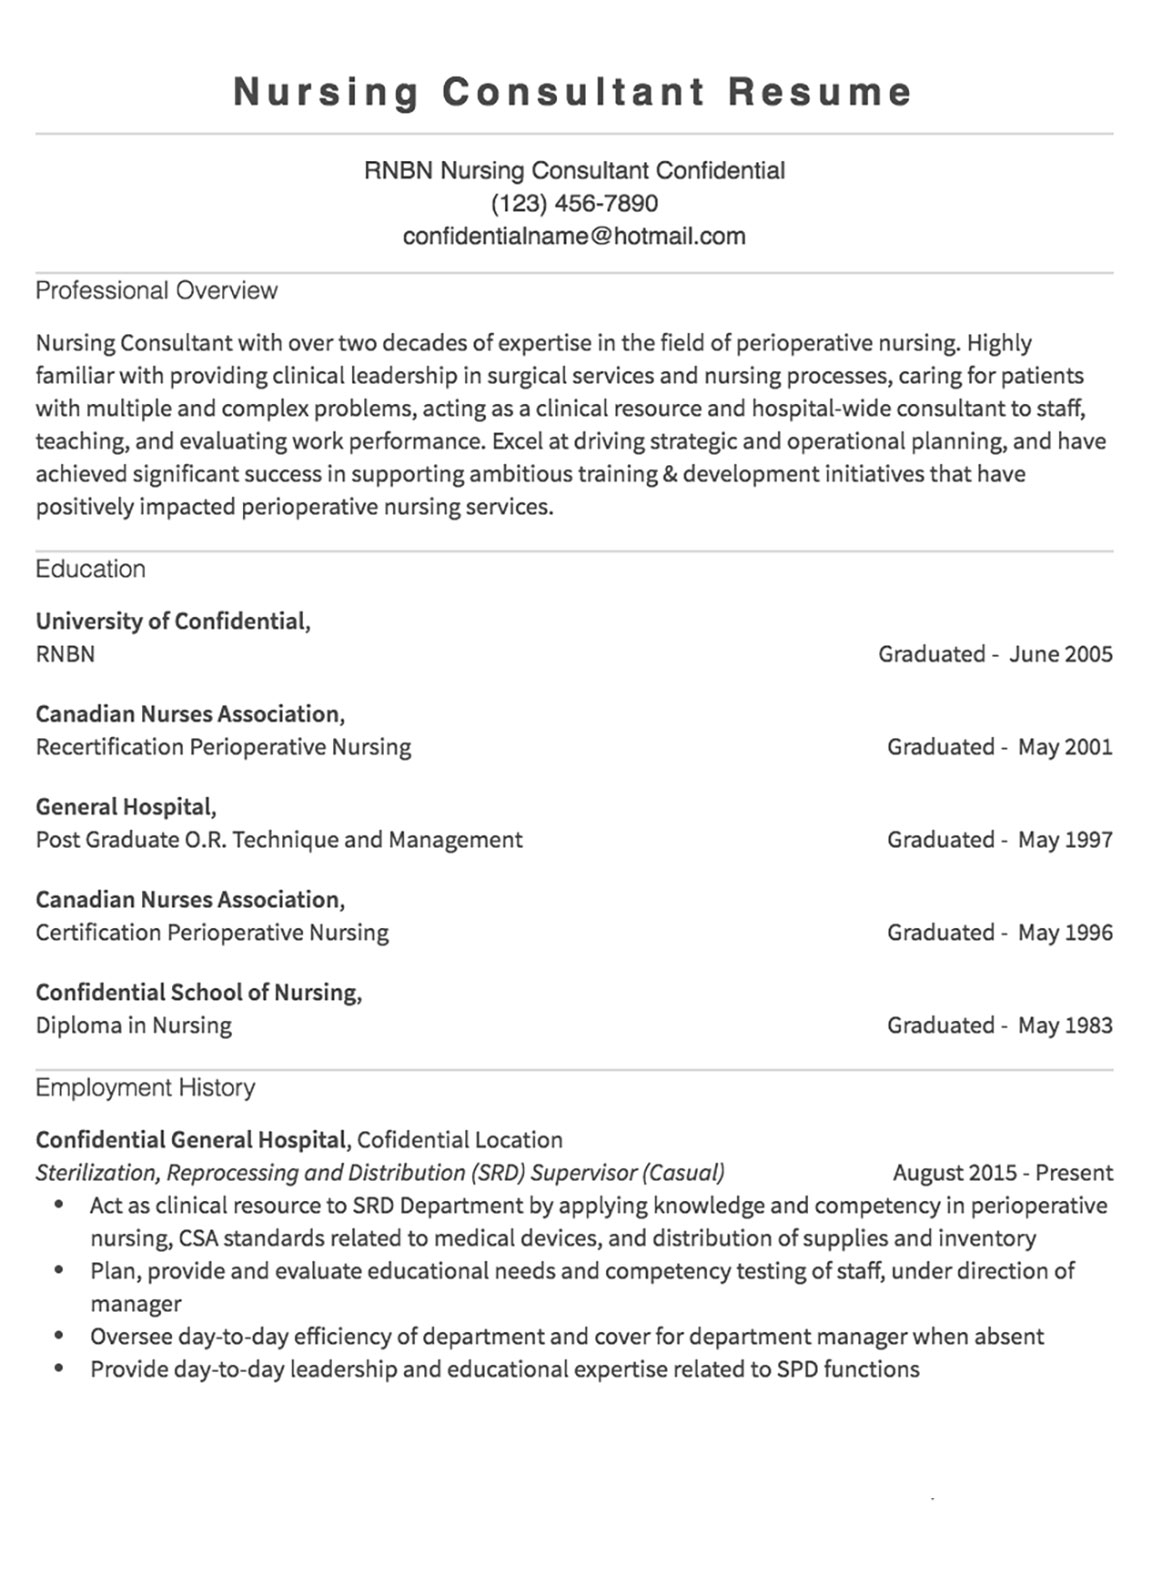 Resume Samples 125 Free Example Resumes & Formats